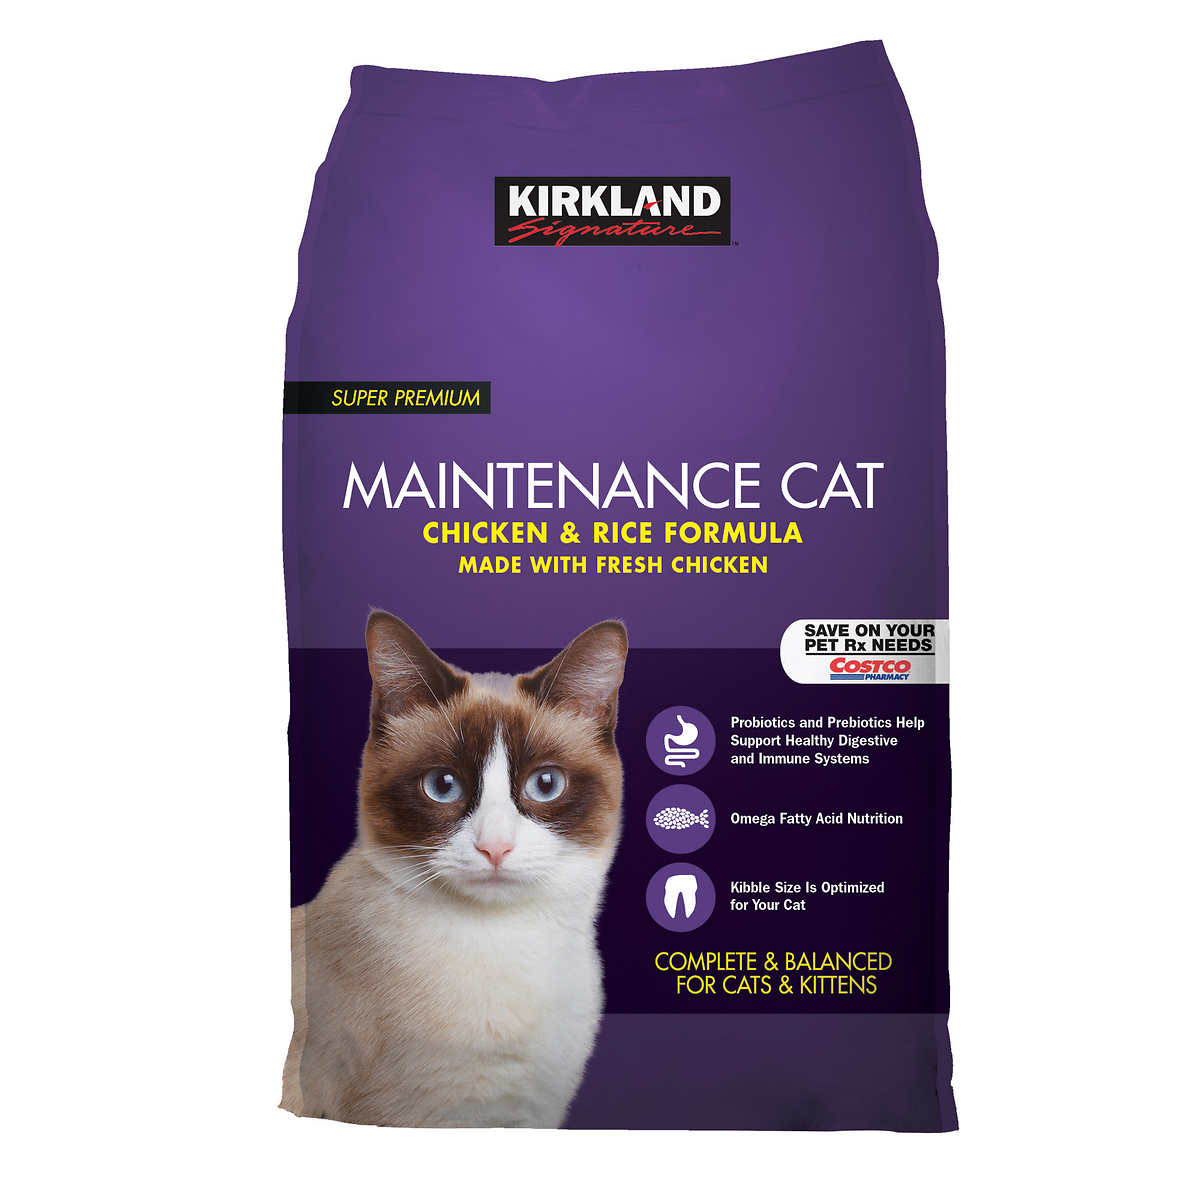 Kirkland Signature Cat Food Recall